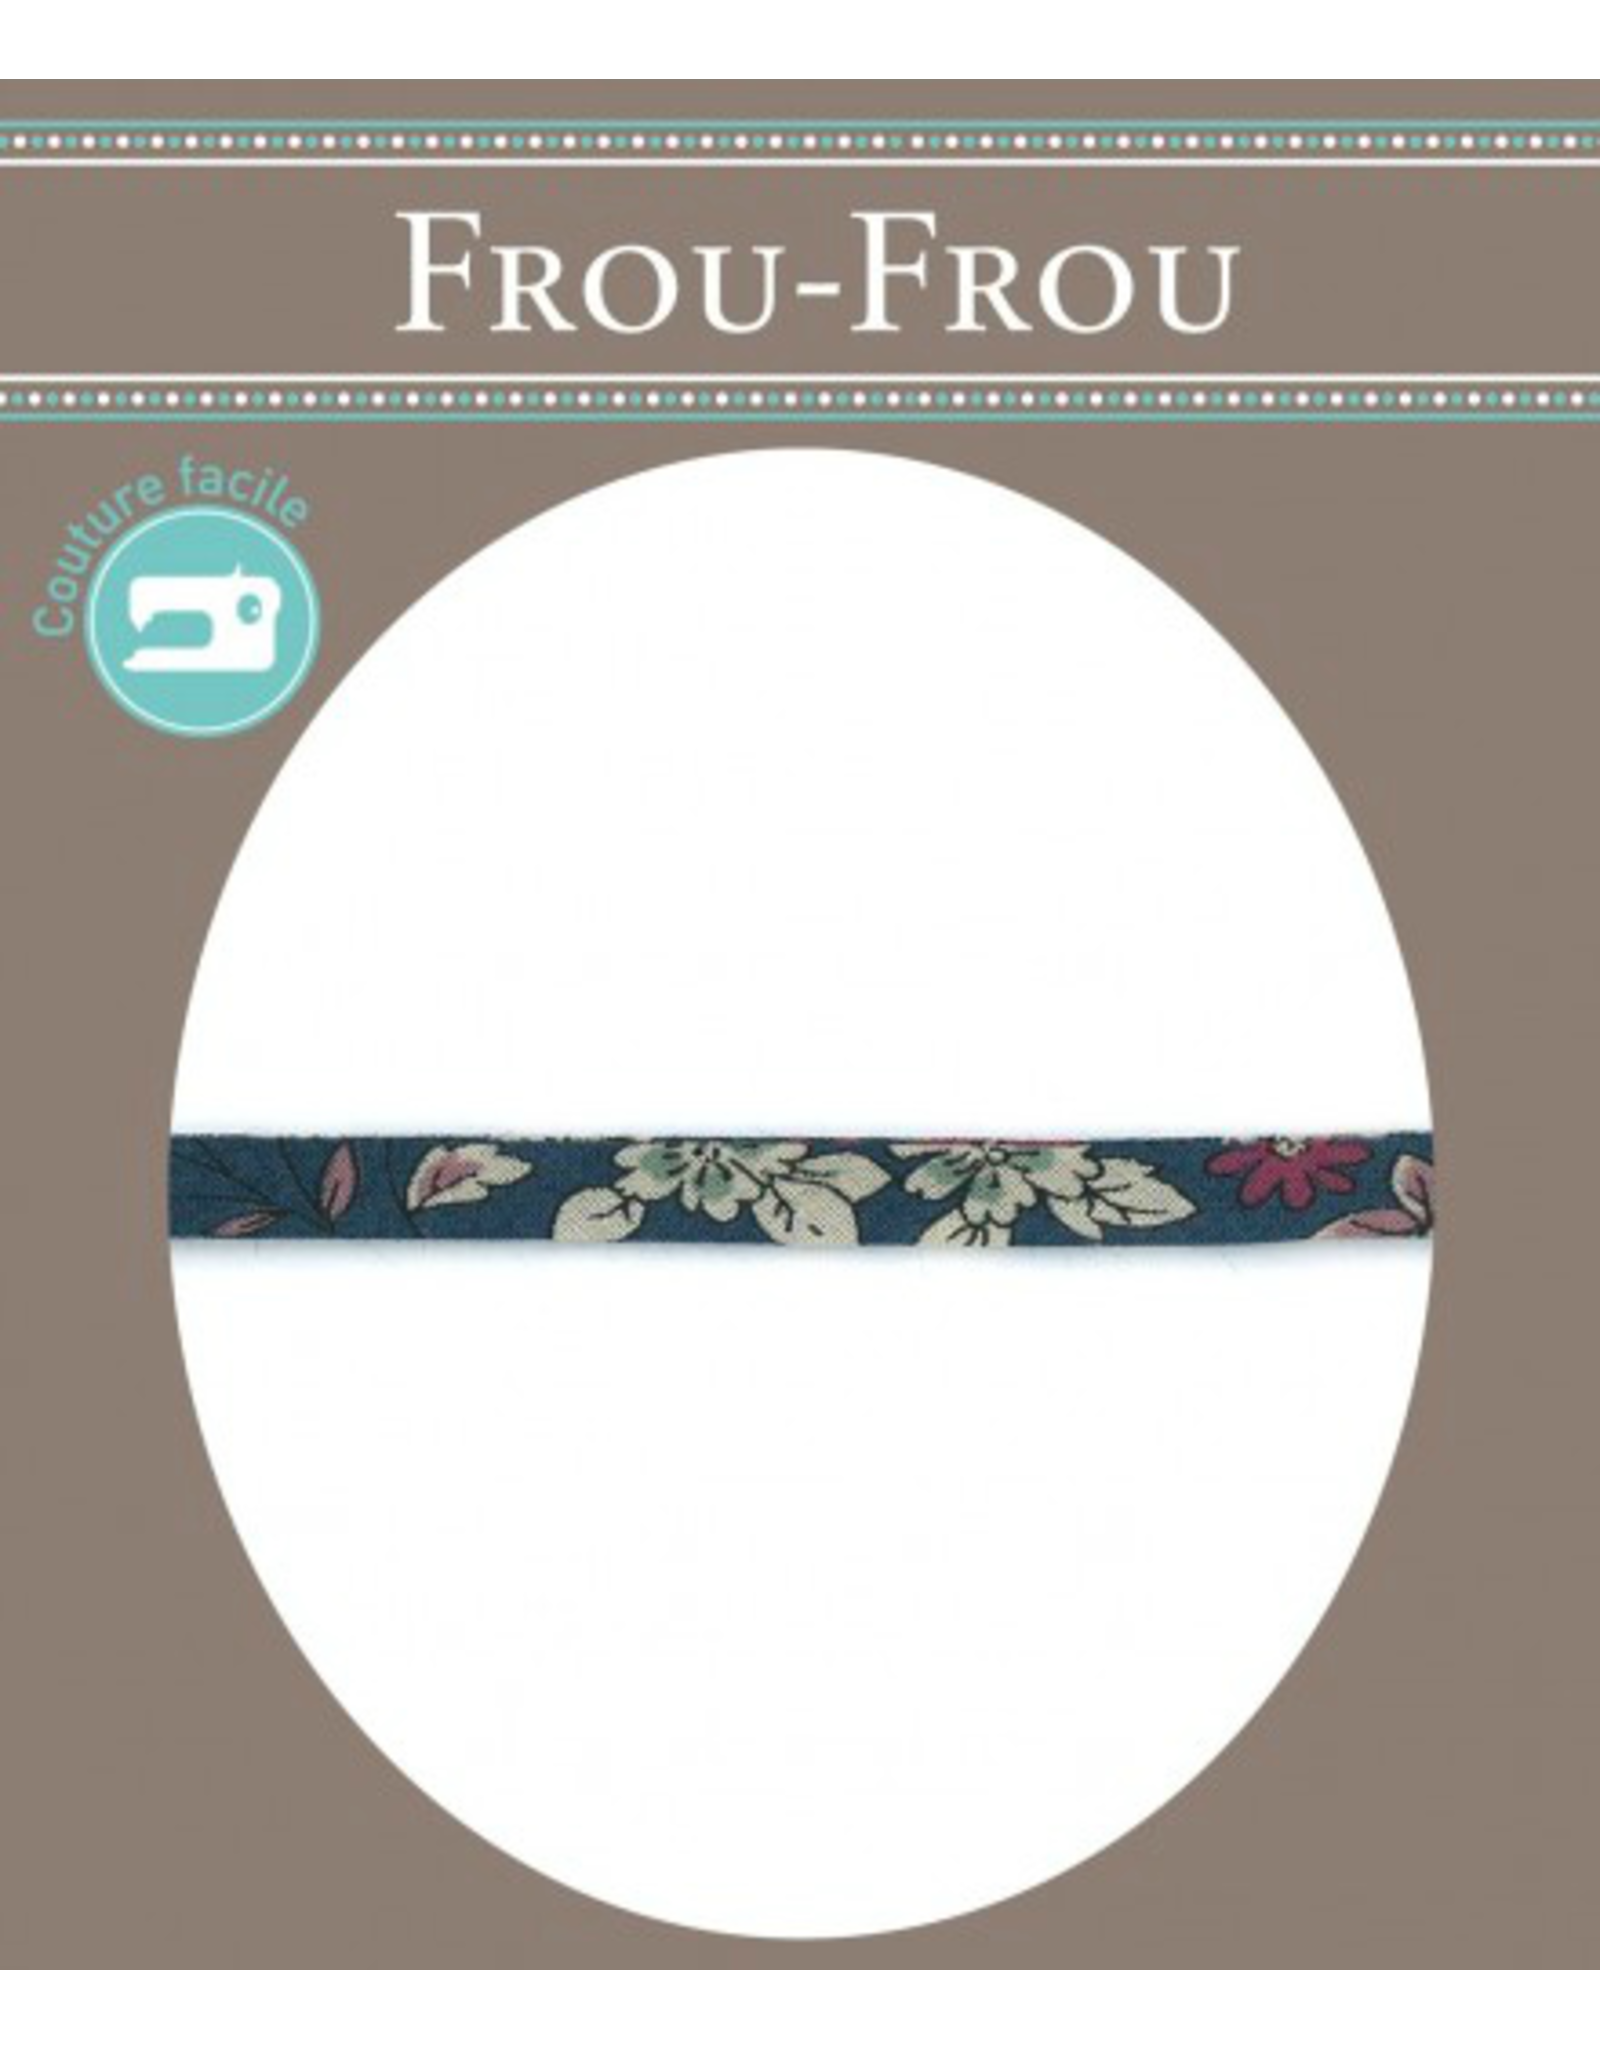 Frou-Frou, France Spaghetti Strap Cord, Fleuri by Frou-Frou in Navy, sold by the 1/2 yard